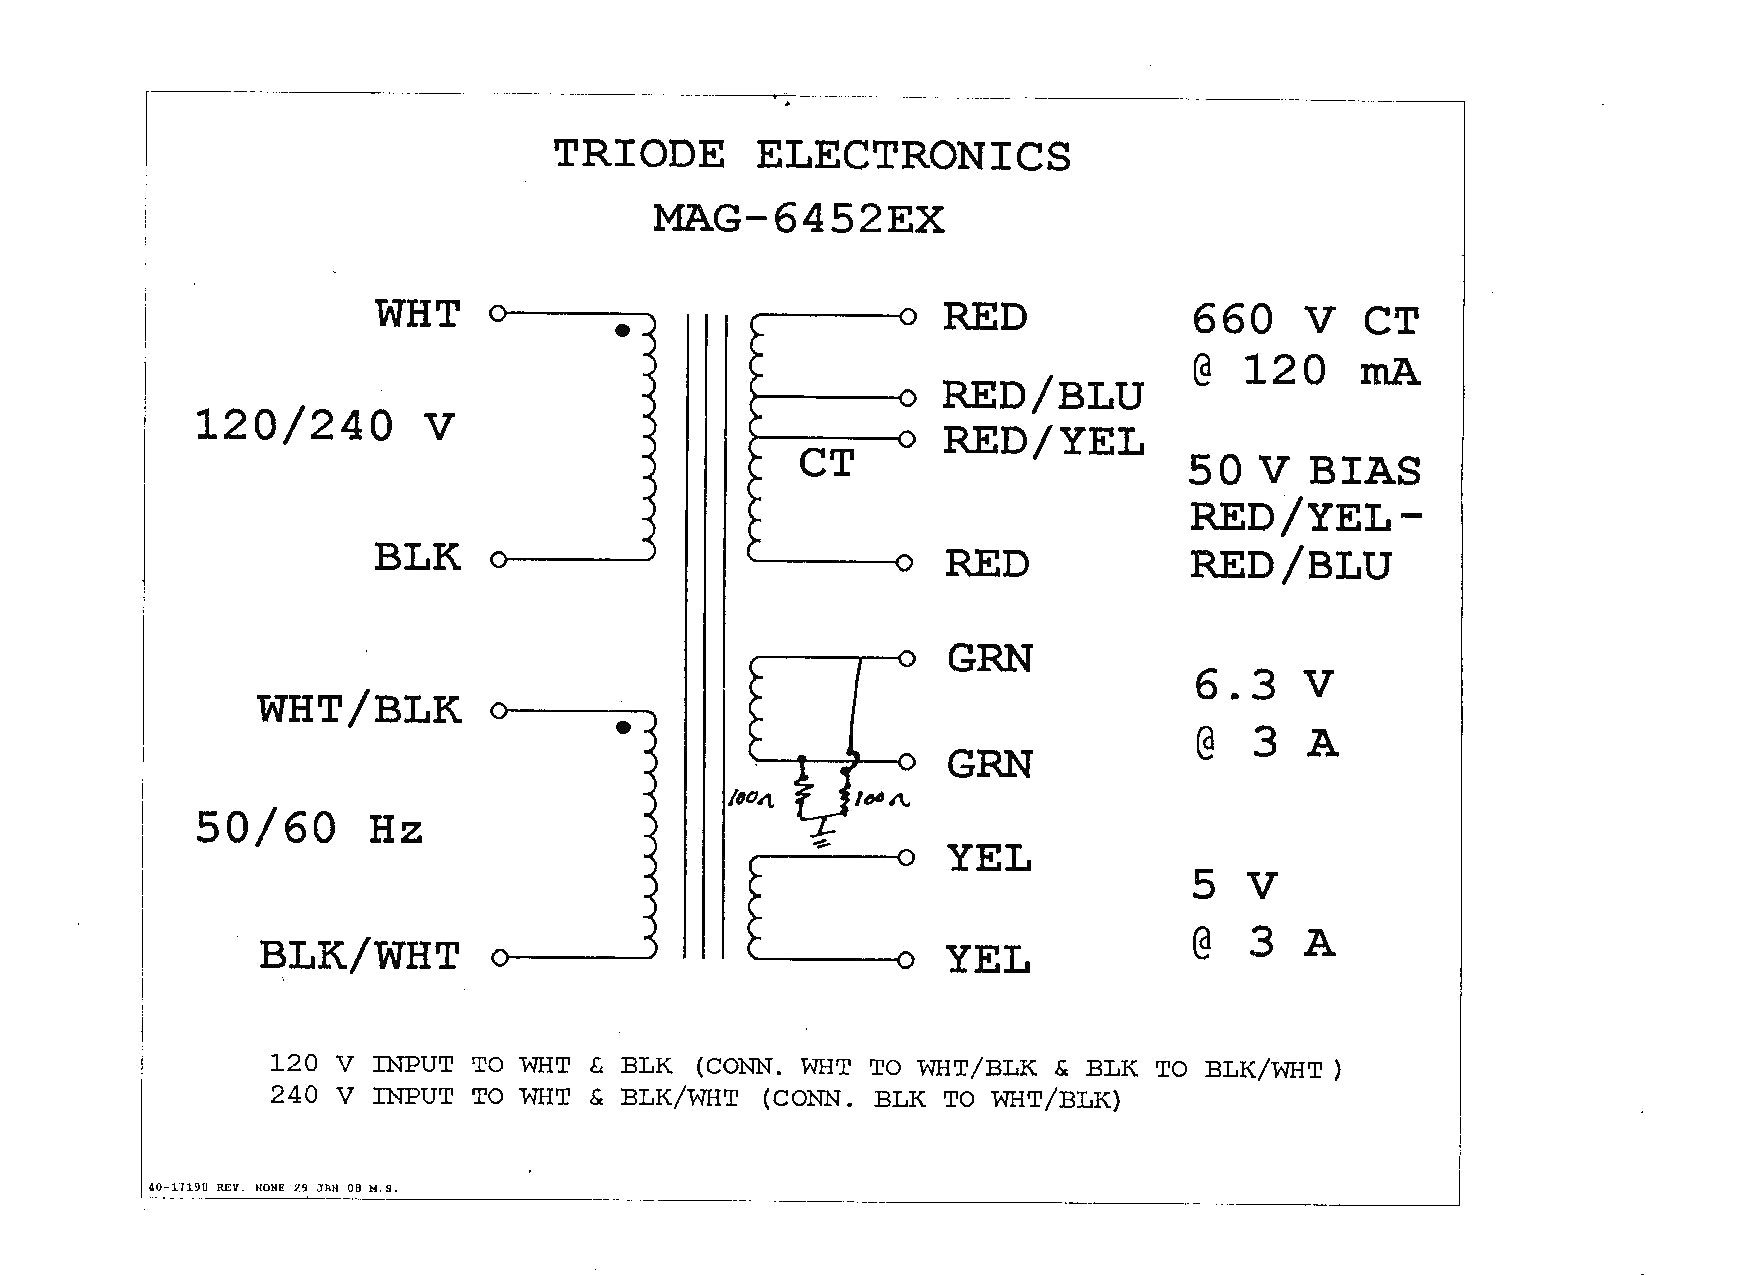 square d buck boost transformer wiring diagram Collection-boost transformer wiring diagram Collection Buck Boost Transformer Wiring Diagram Free Diagrams Fancy For How 17-g